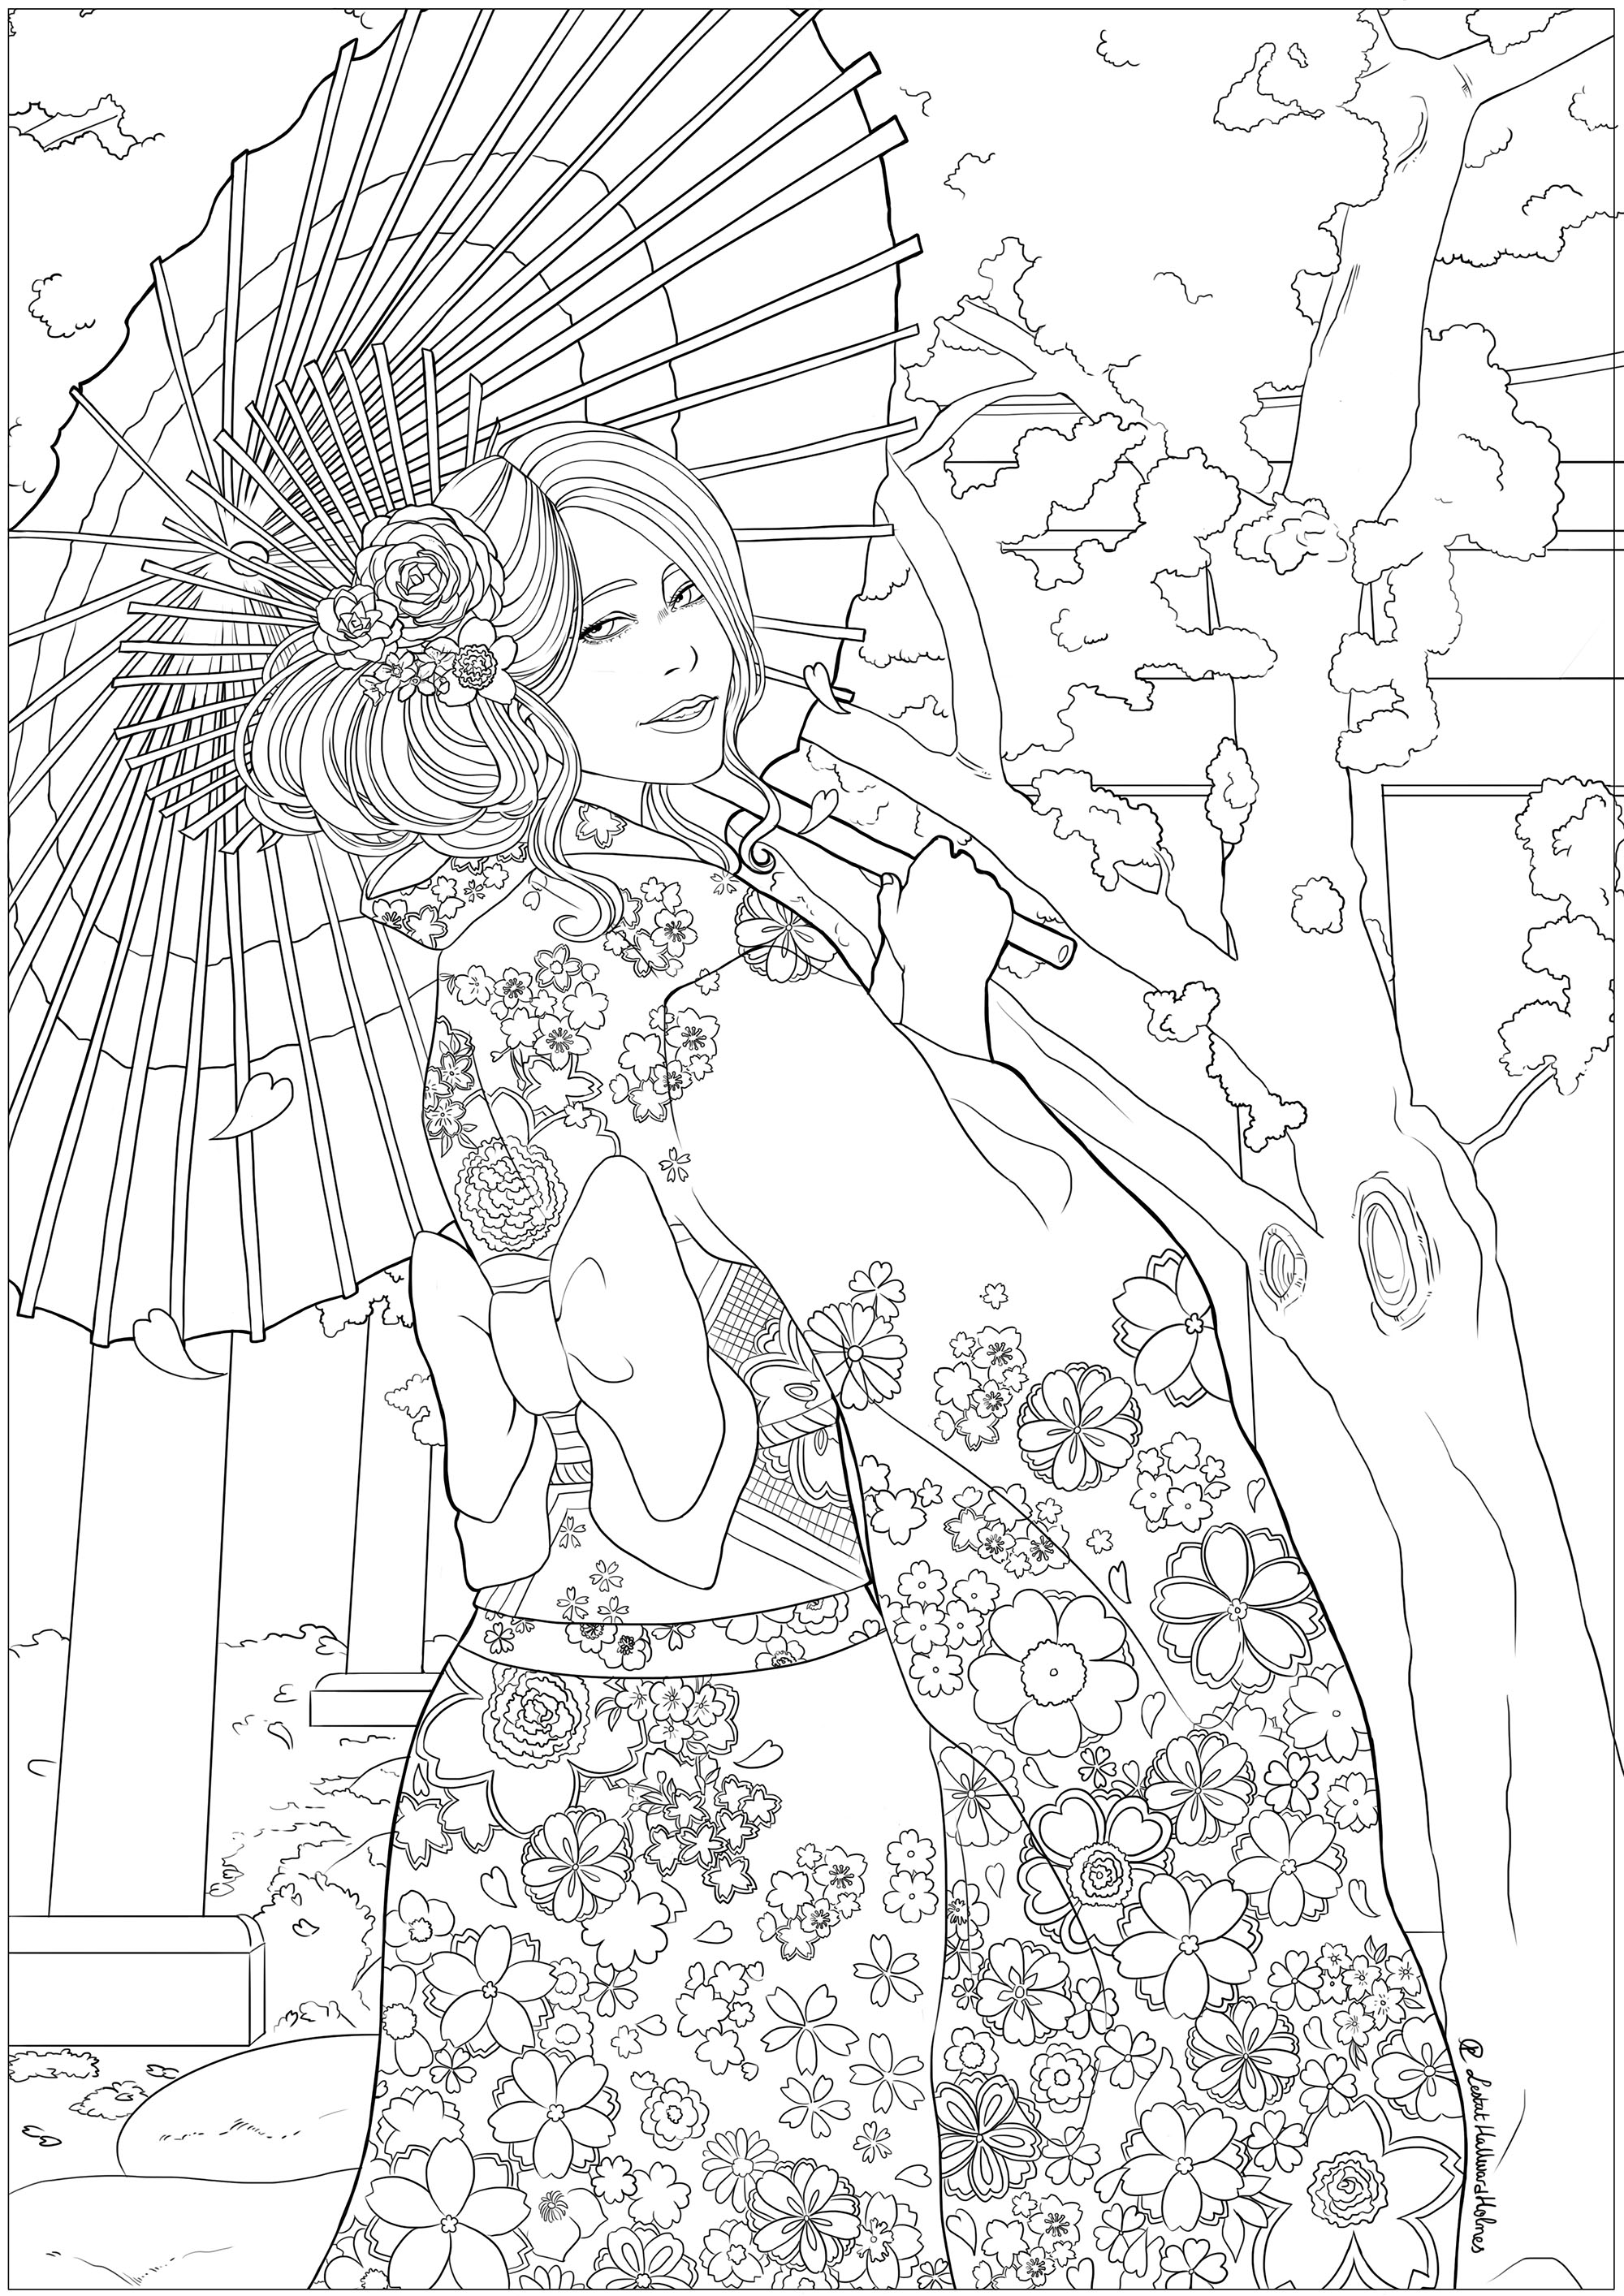 Elegant young woman in front of a temple and cherry blossoms, with her most beautiful yukata. Drawing celebrating Hanami, the Japanese spring festival.